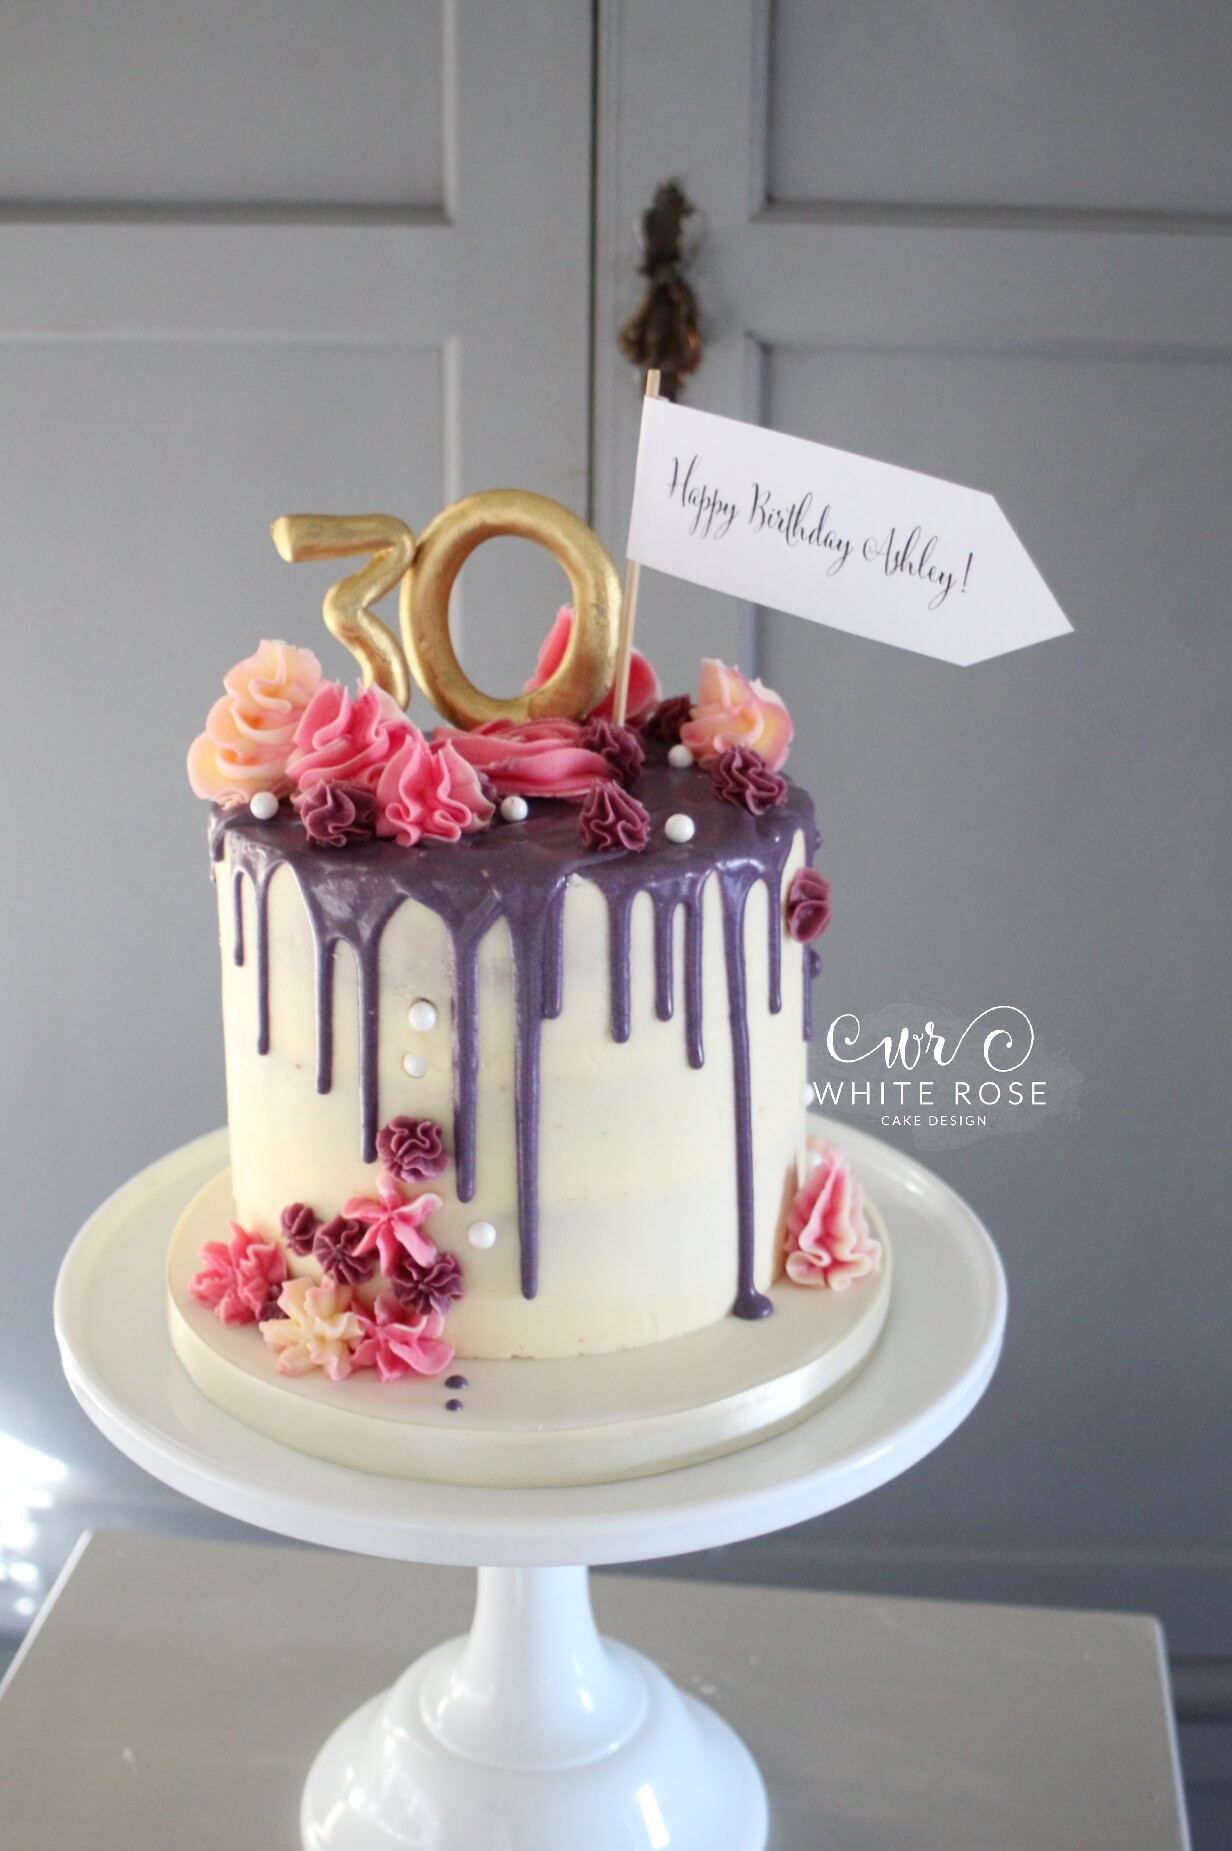 Best ideas about Birthday Cake Designs For Him . Save or Pin Birthday Cakes Christening Cakes and Other Celebration Now.